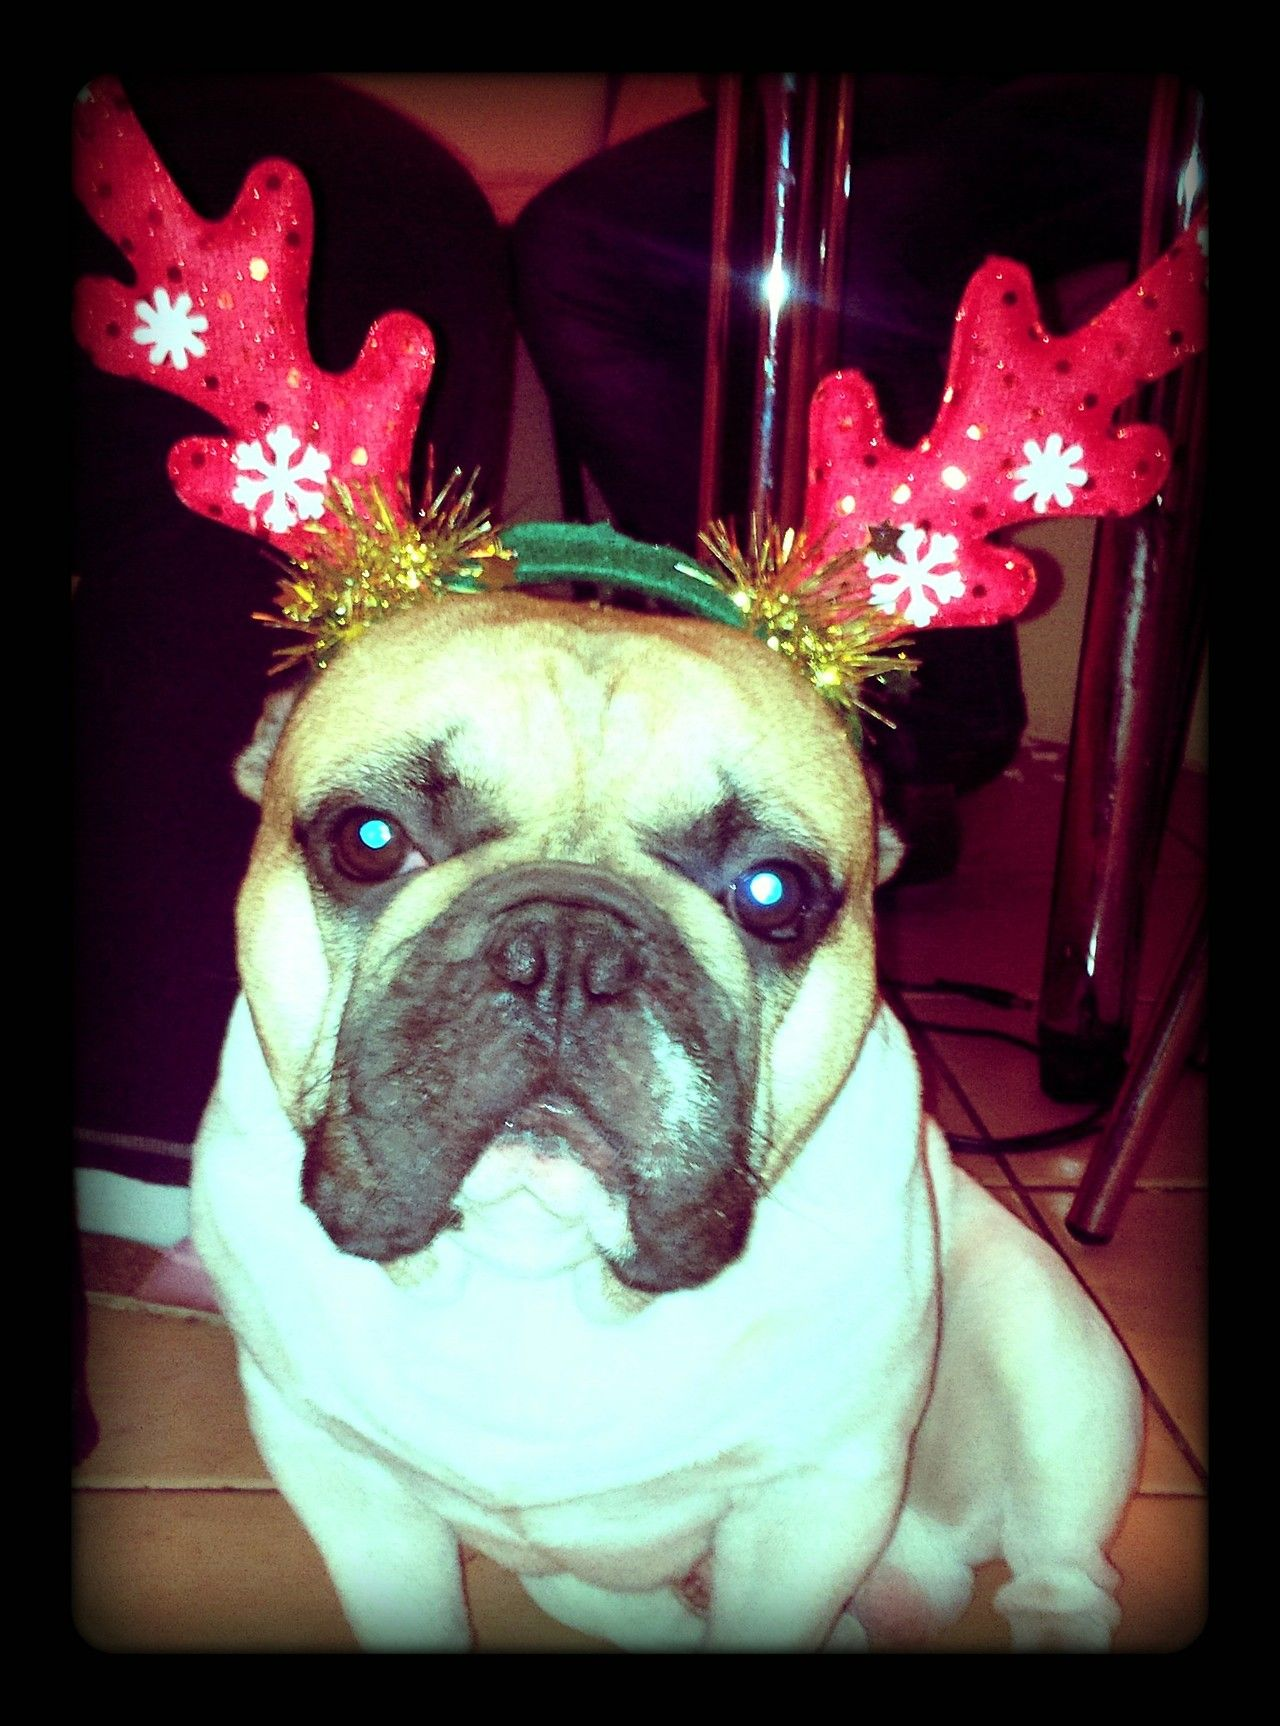 Tumblr Frenchie, Red nose, Bullying